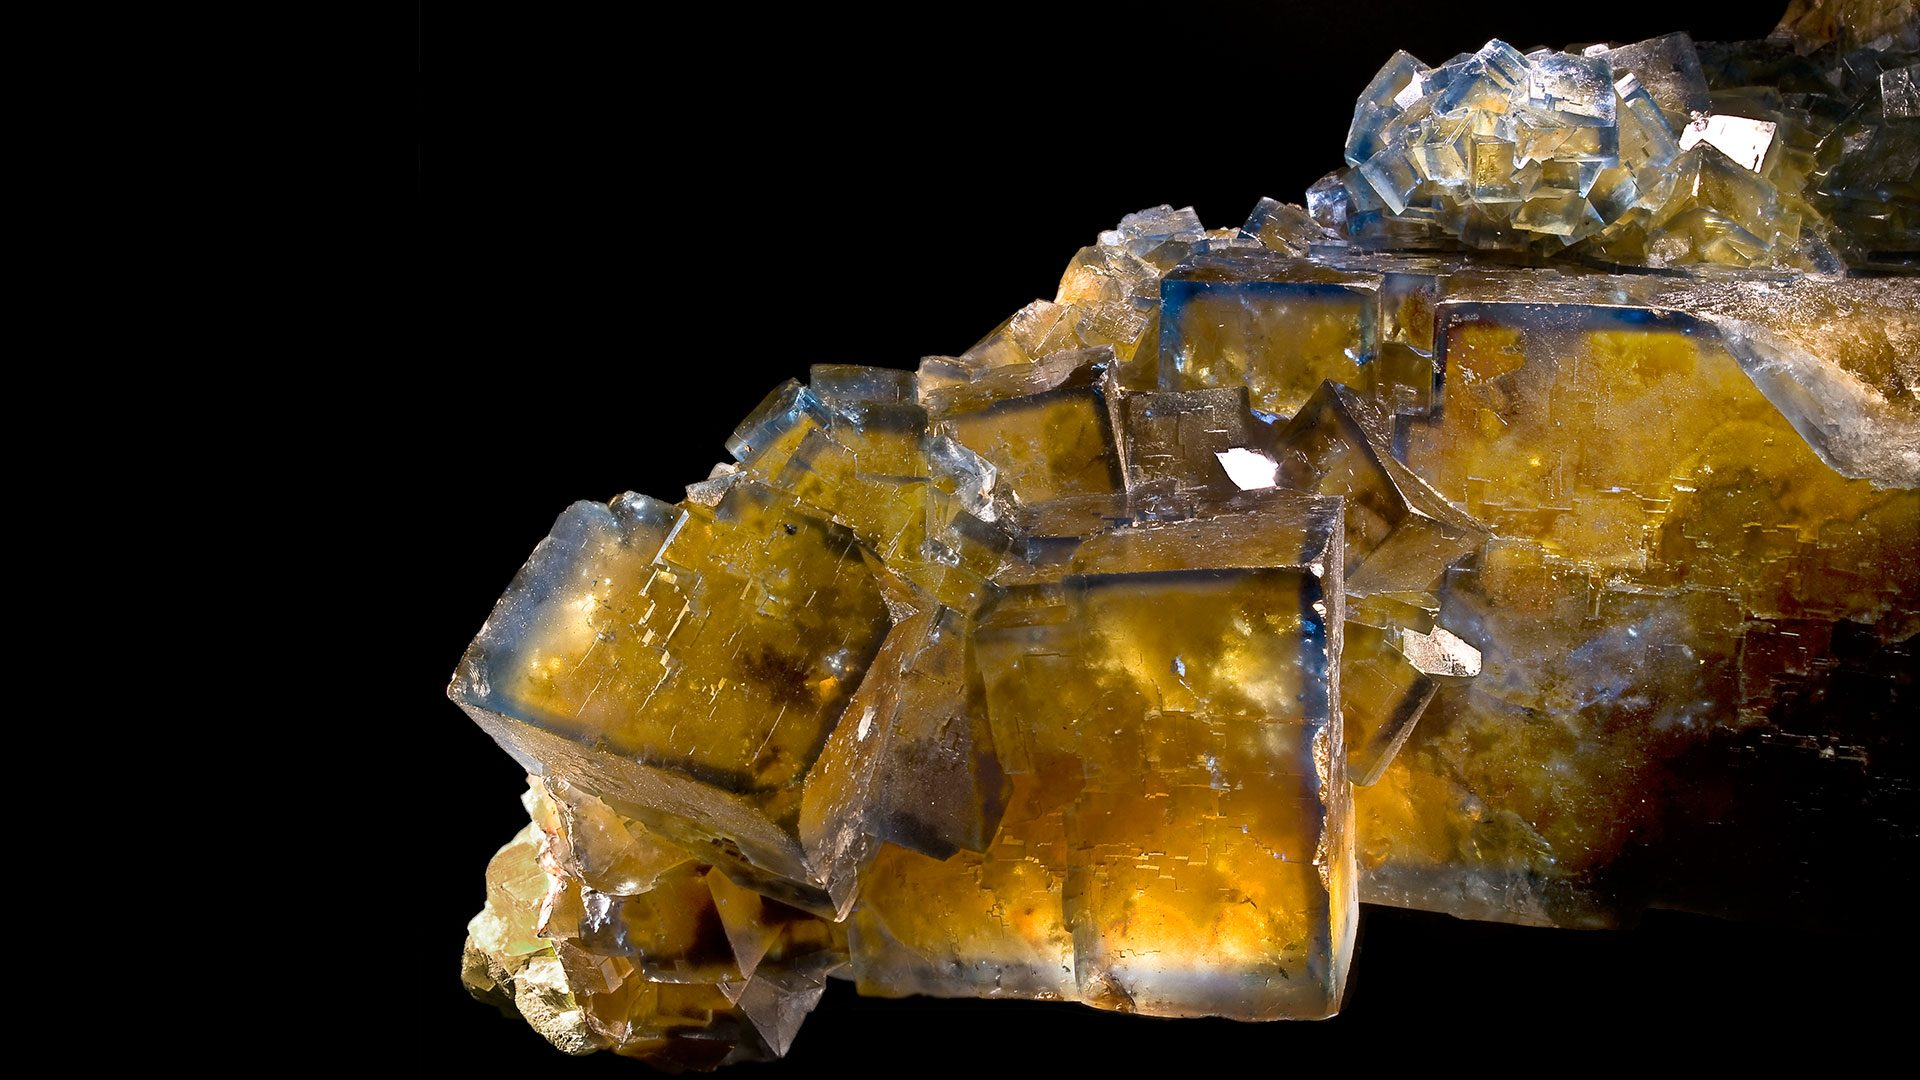 Gold Fluorite Cluster Specimen - Photograph by Didier Descouens